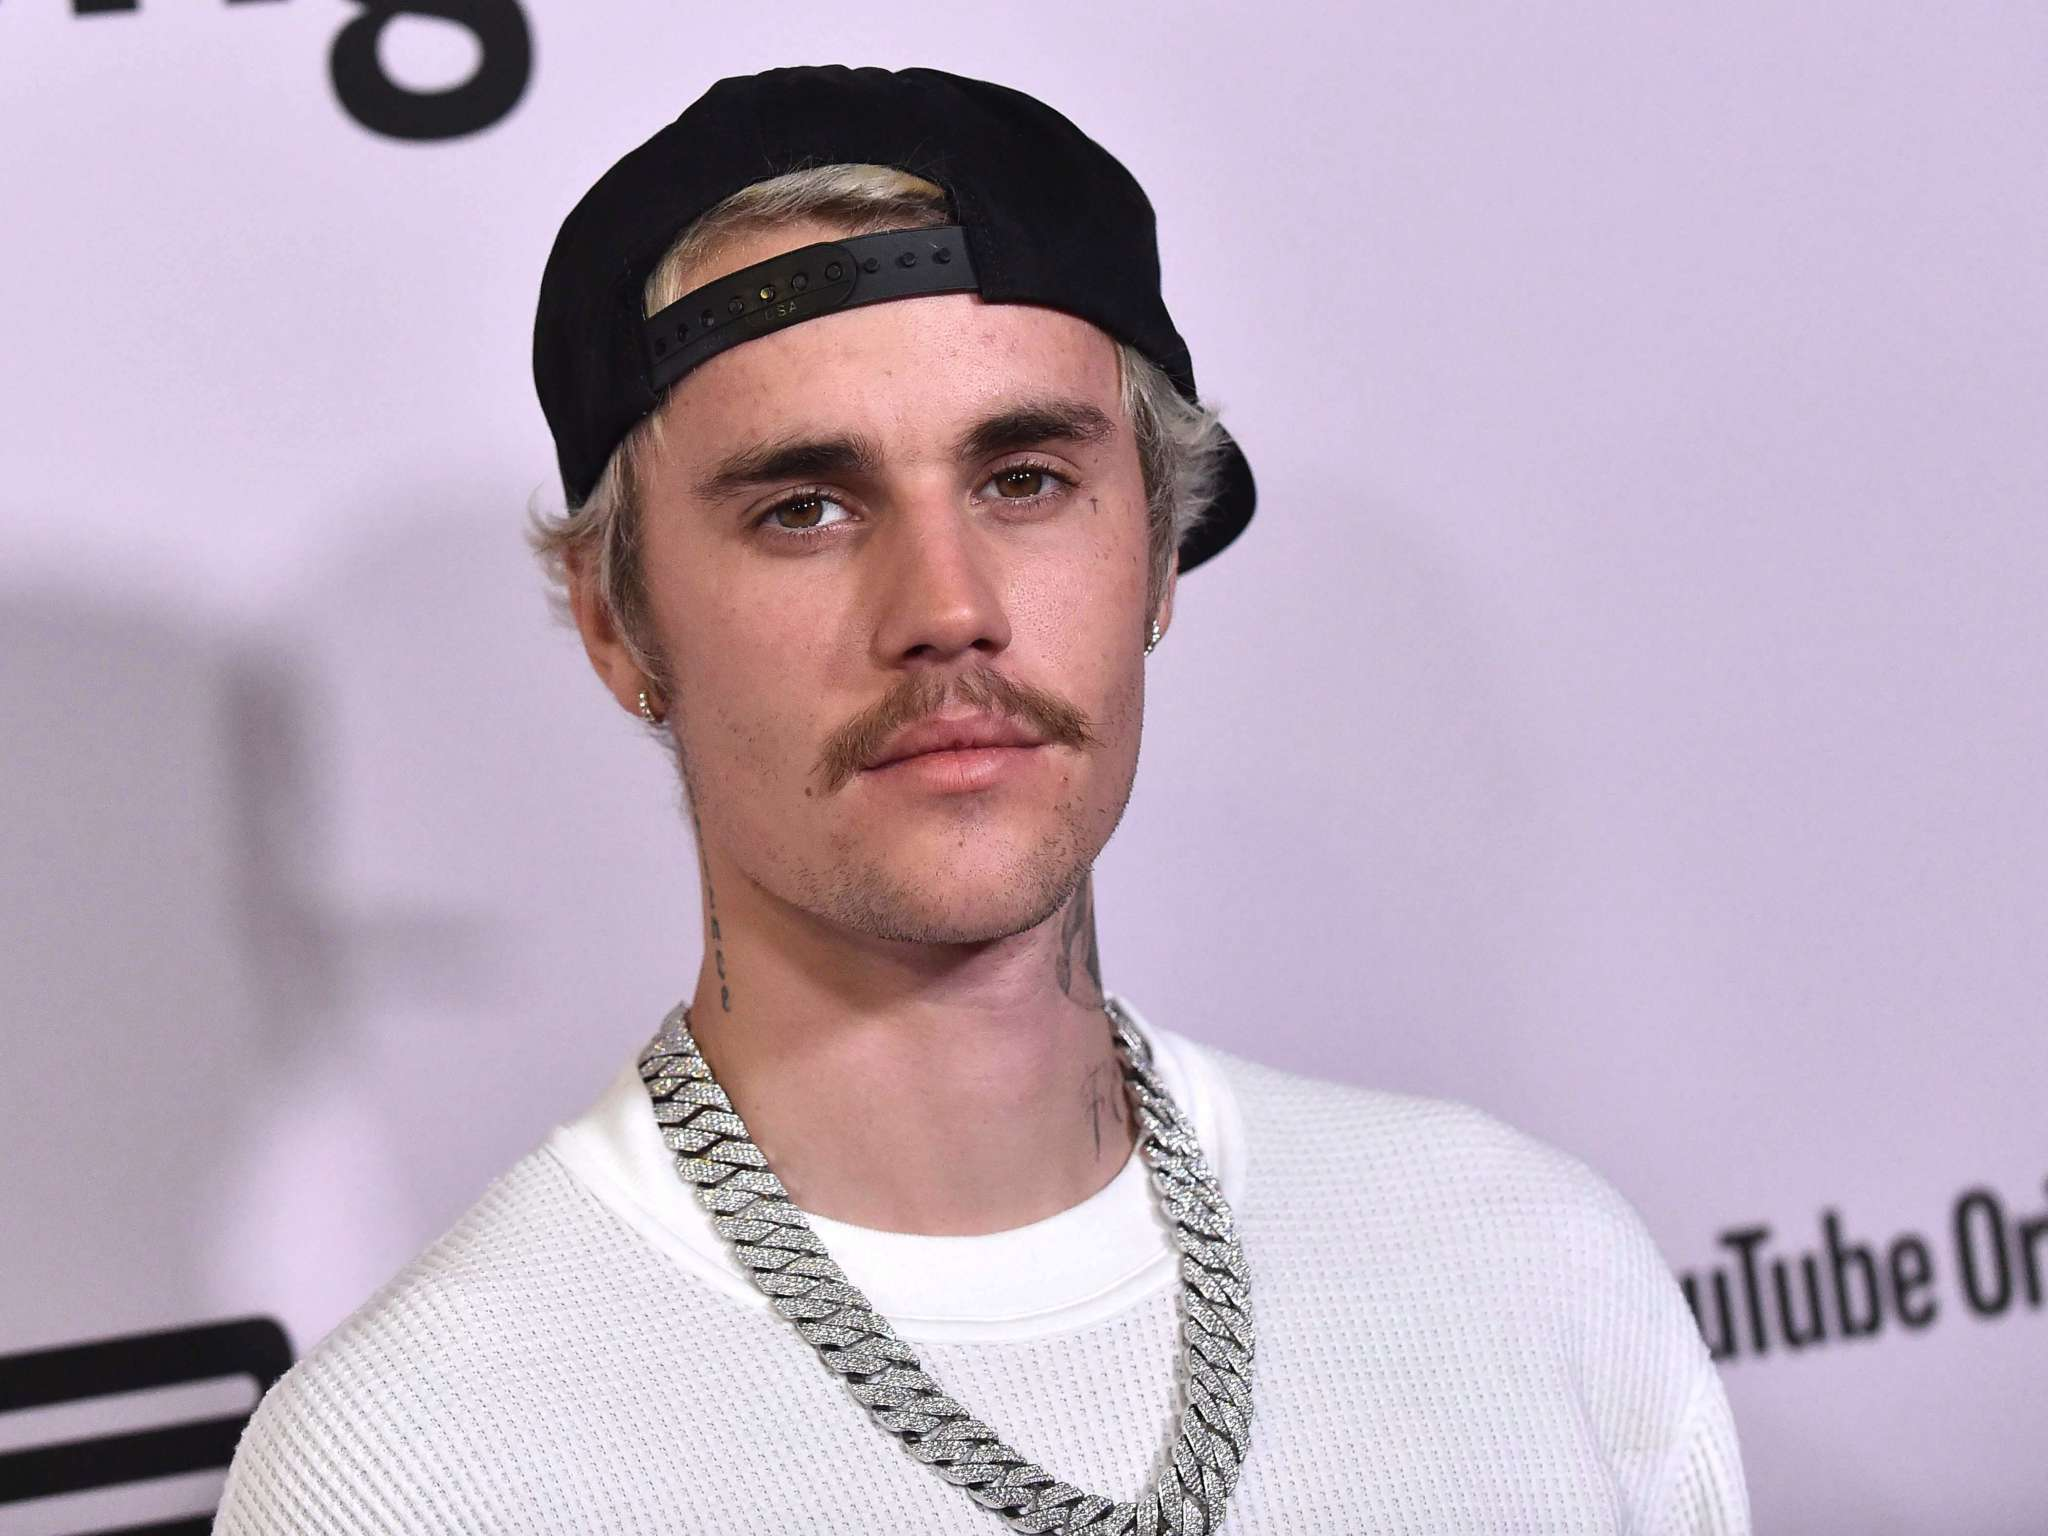 Justin Bieber Responds To Sexual Assault Accusations - See What He Has To Say About A Specific Night At A Hotel